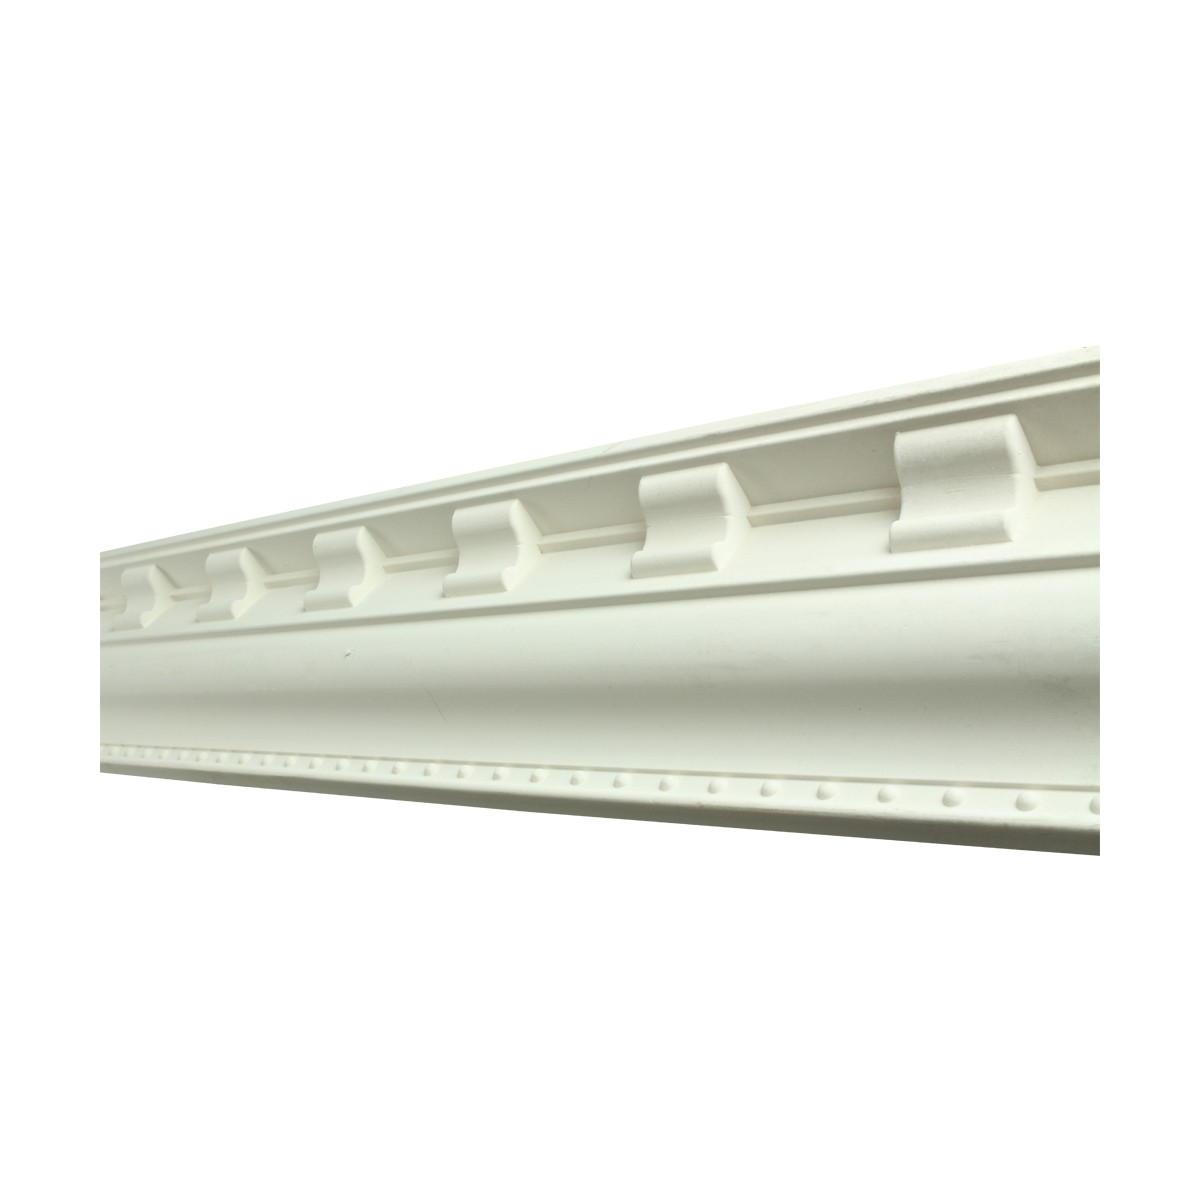 Renovators Supply Ornate Cornice White Urethane Chesterfield Design 16 Pieces Totaling 1520 Length White PrePrimed Urethane Crown Cornice Molding Cornice Crown Home Depot Ekena Millwork Molding Wall Ceiling Corner Cornice Crown Cove Molding